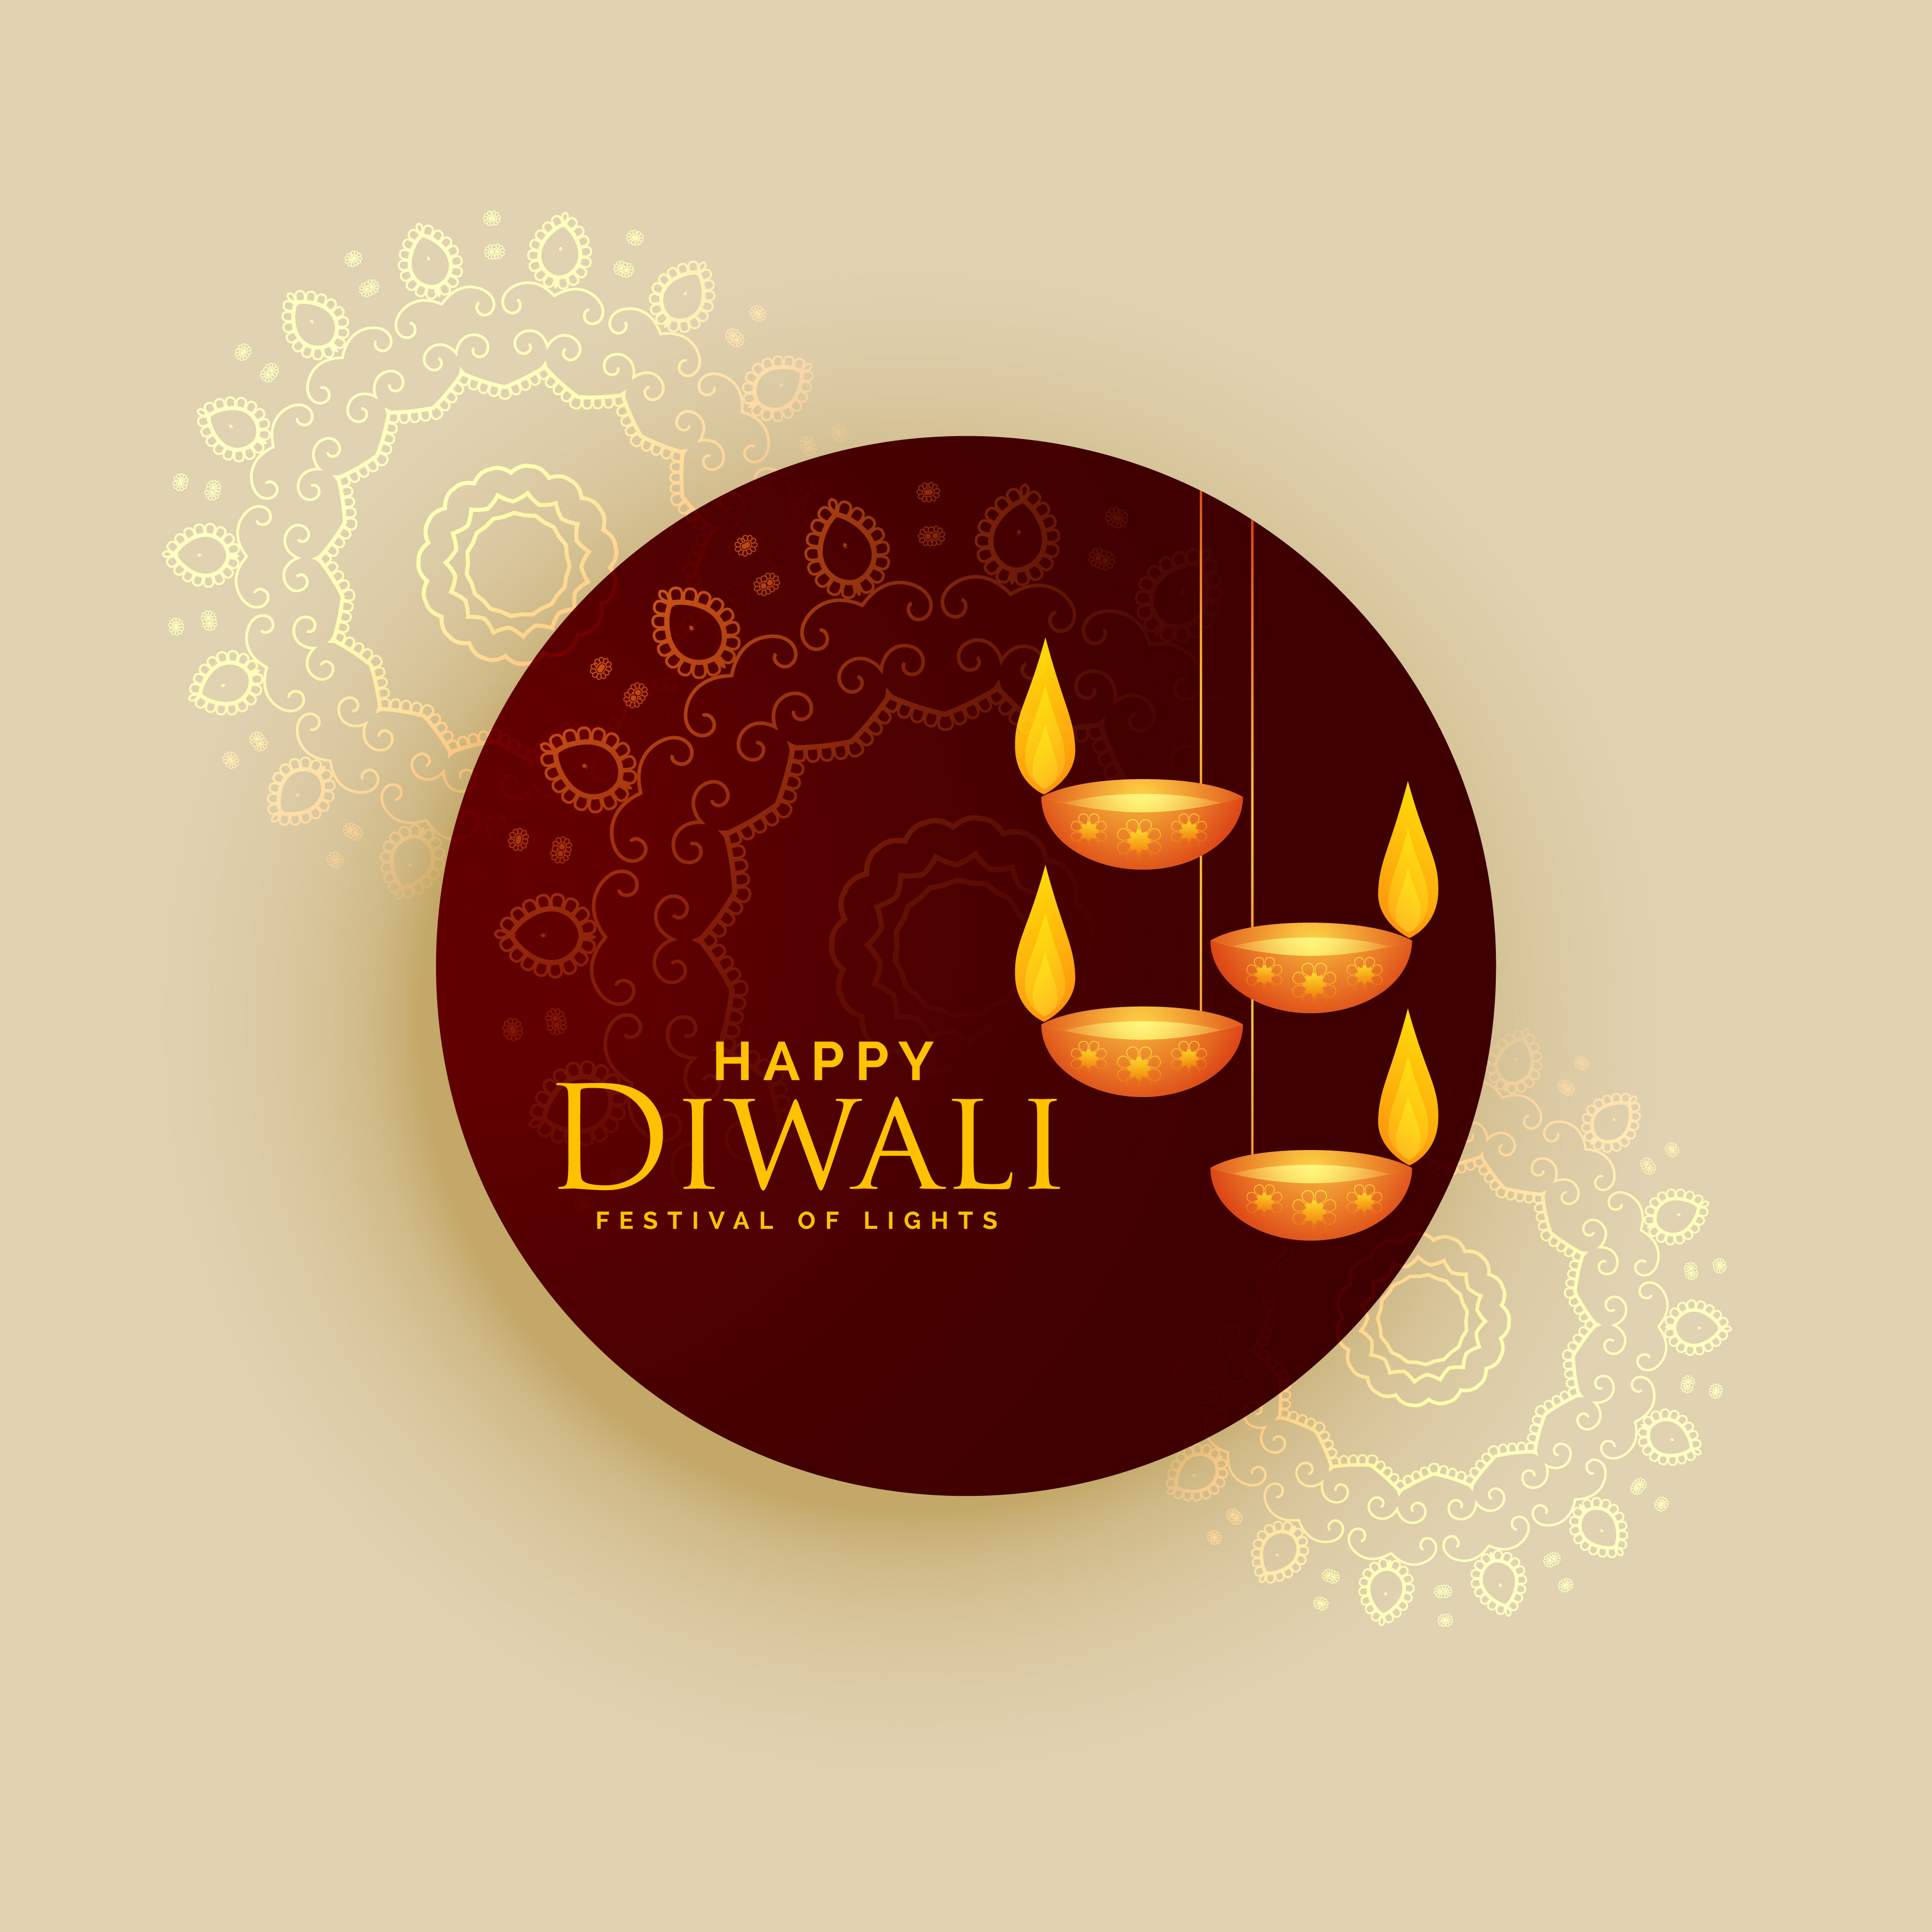 Diwali Holiday Greeting Card Vector Design With Hanging Lamps